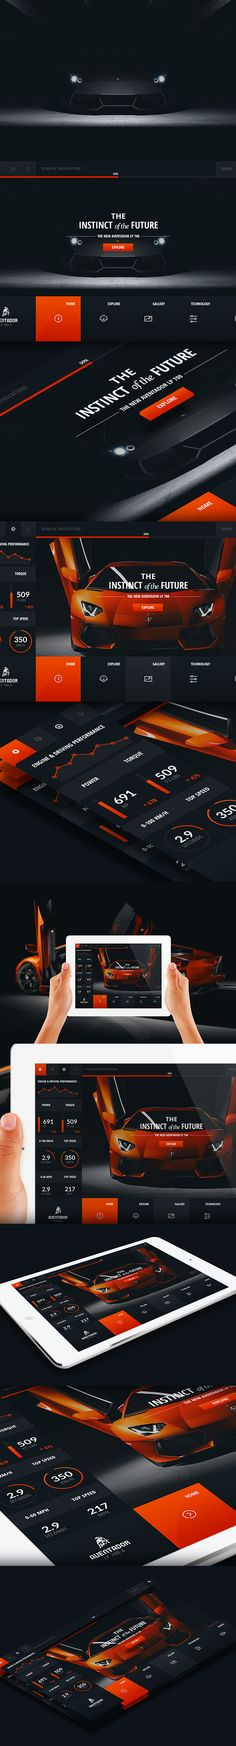 Lamborghini Aventador - Web Layout by Detrans - Studio, via Behance